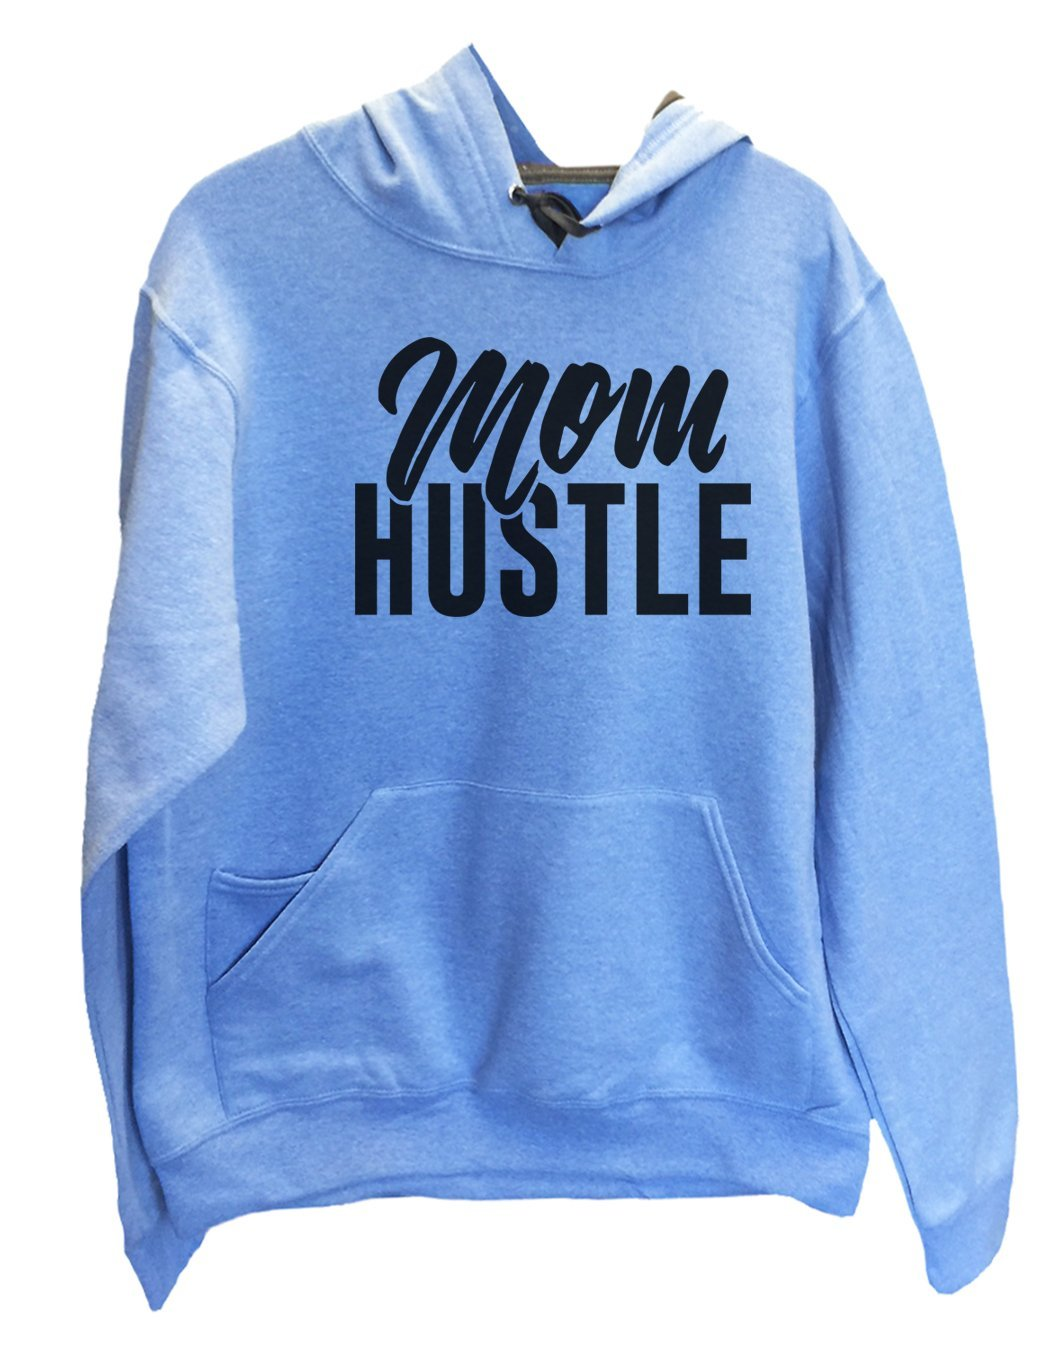 UNISEX HOODIE - Mom Hustle - FUNNY MENS AND WOMENS HOODED SWEATSHIRTS - 2178 Funny Shirt Small / North Carolina Blue